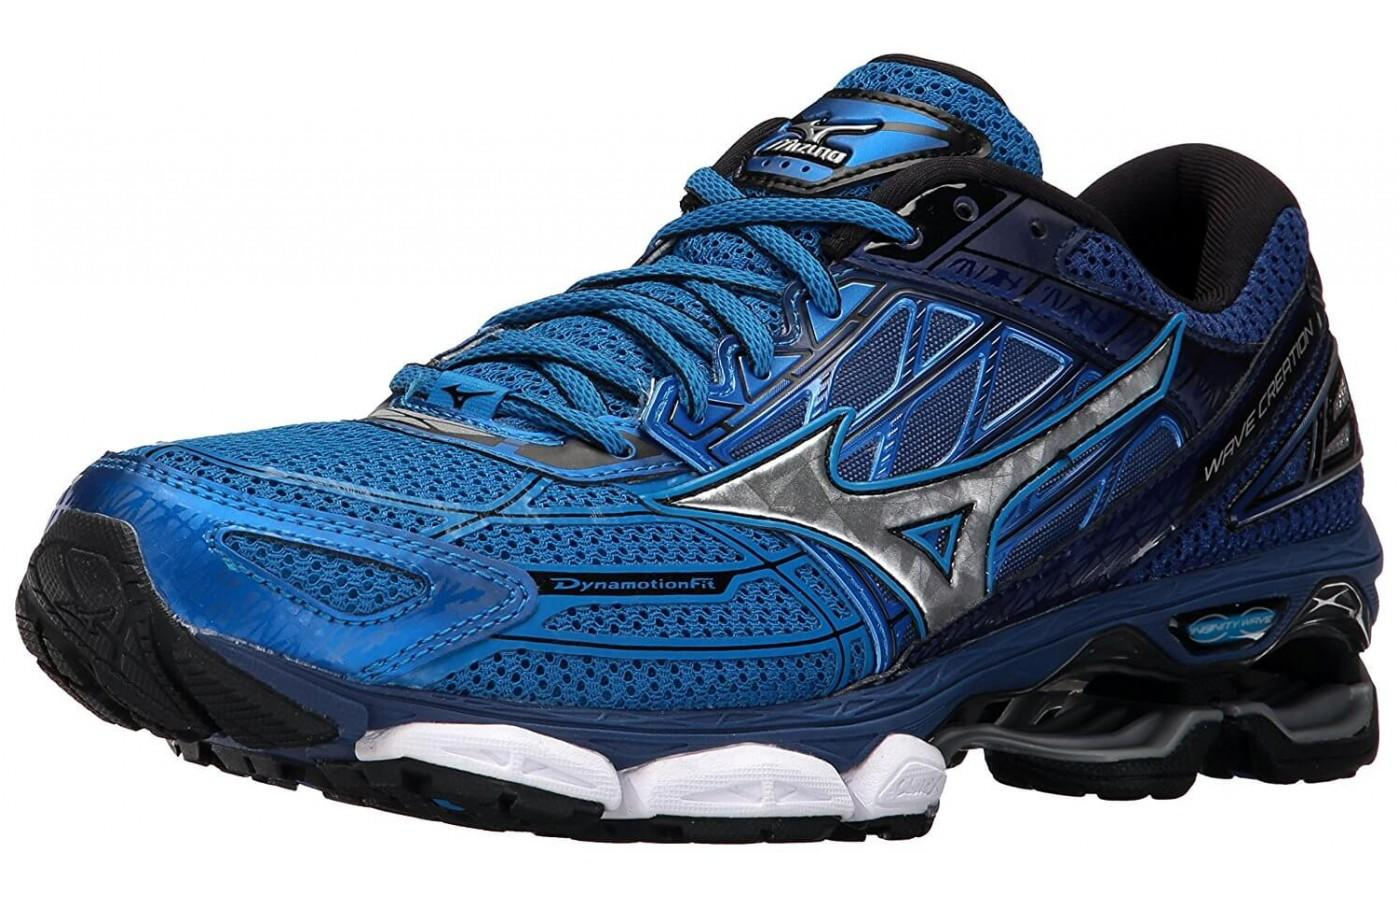 The Wave Creation series introduces a more cushioned shoe in the 19.